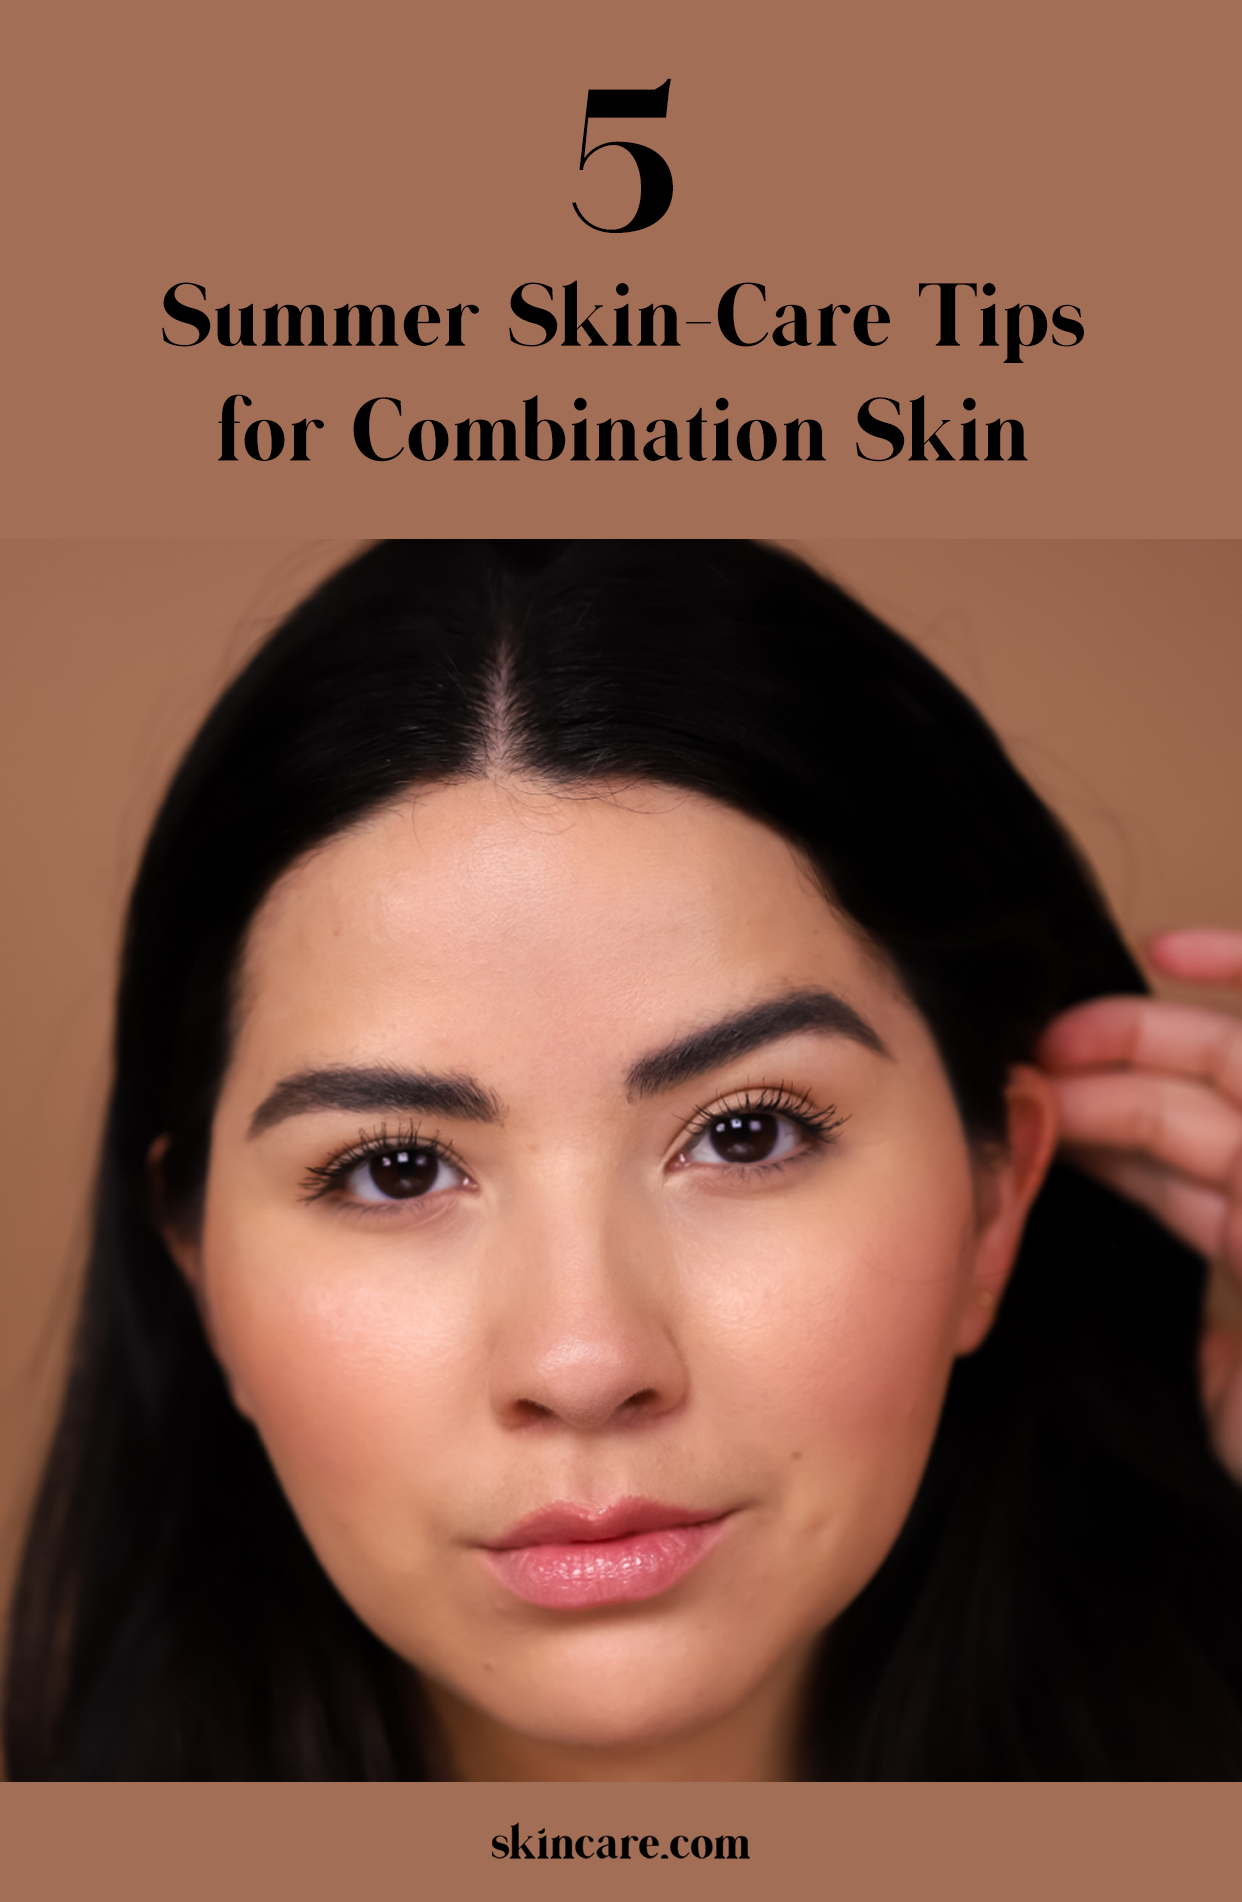 5 Summer Skin Care Tips For Combination Skin Skincare Com By L Oreal Combination Skin Summer Skin Summer Skin Care Tips